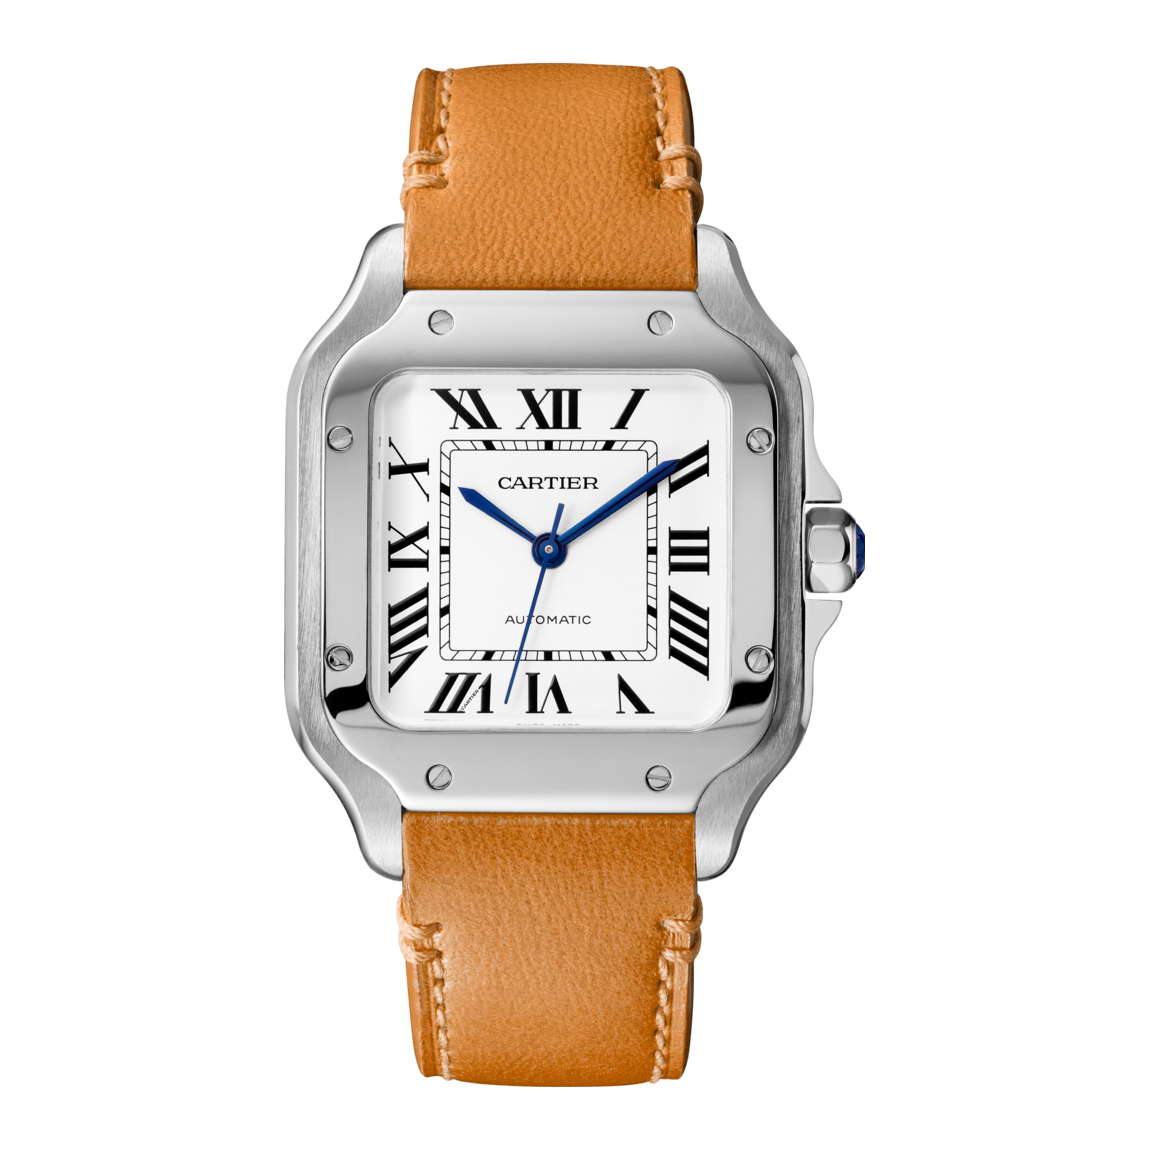 be article magazines collection porter de watch style new santos available mr to on from the cartier watches